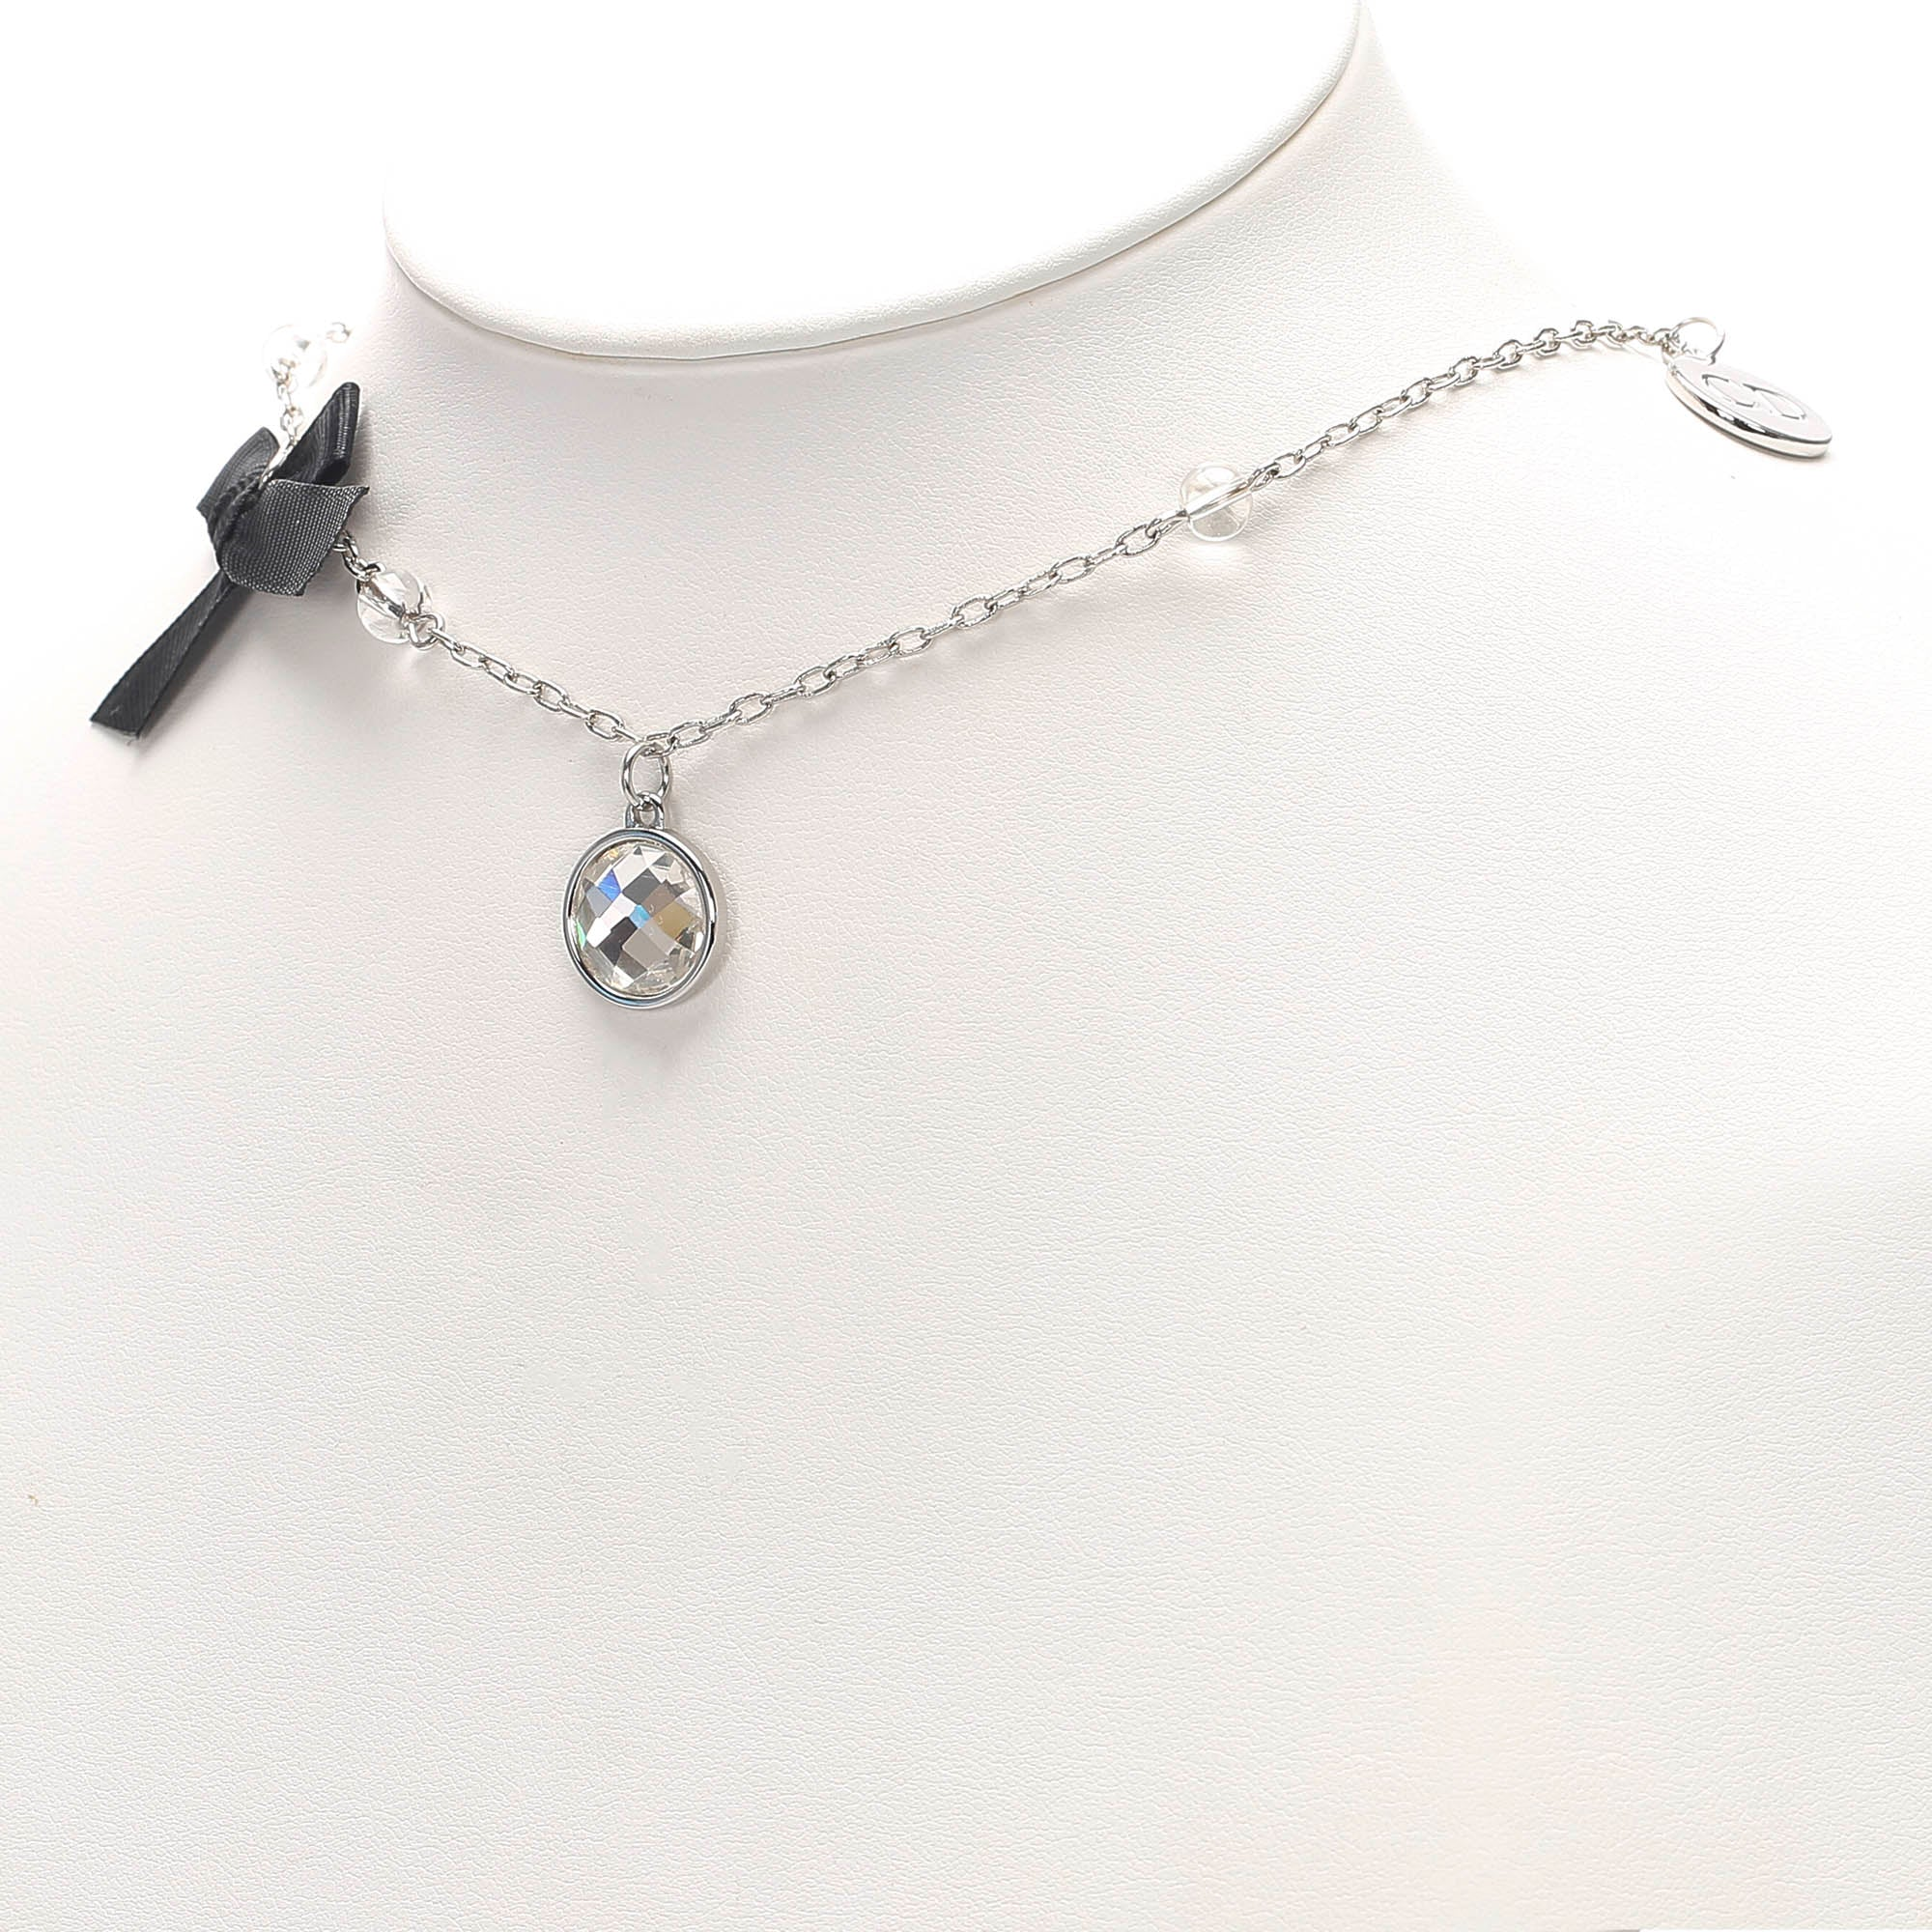 Dior Silver Silver-Tone Charms Necklace